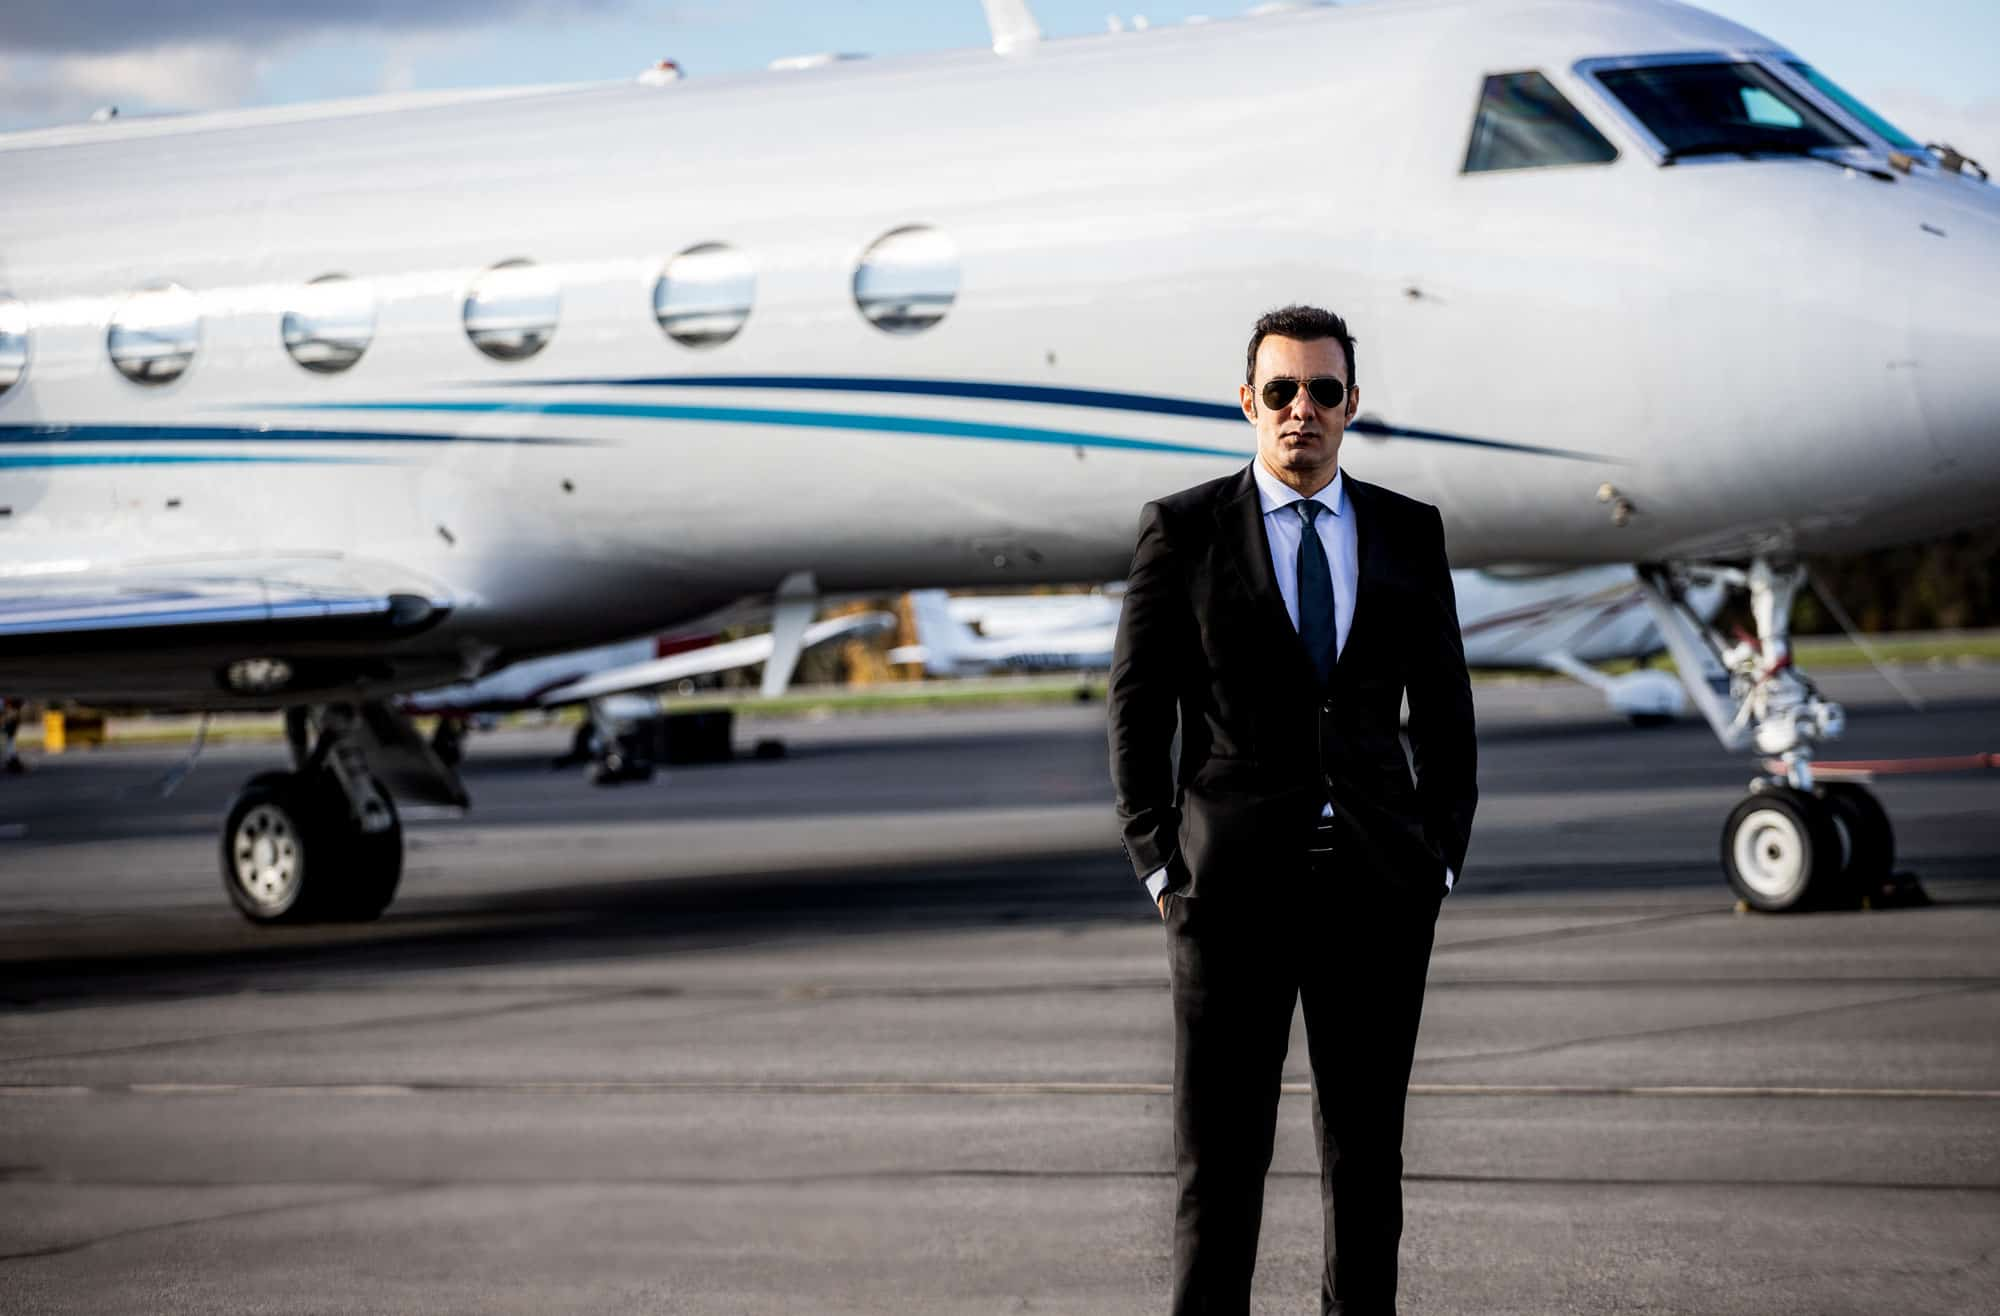 Richard Zaher in front of a Jet